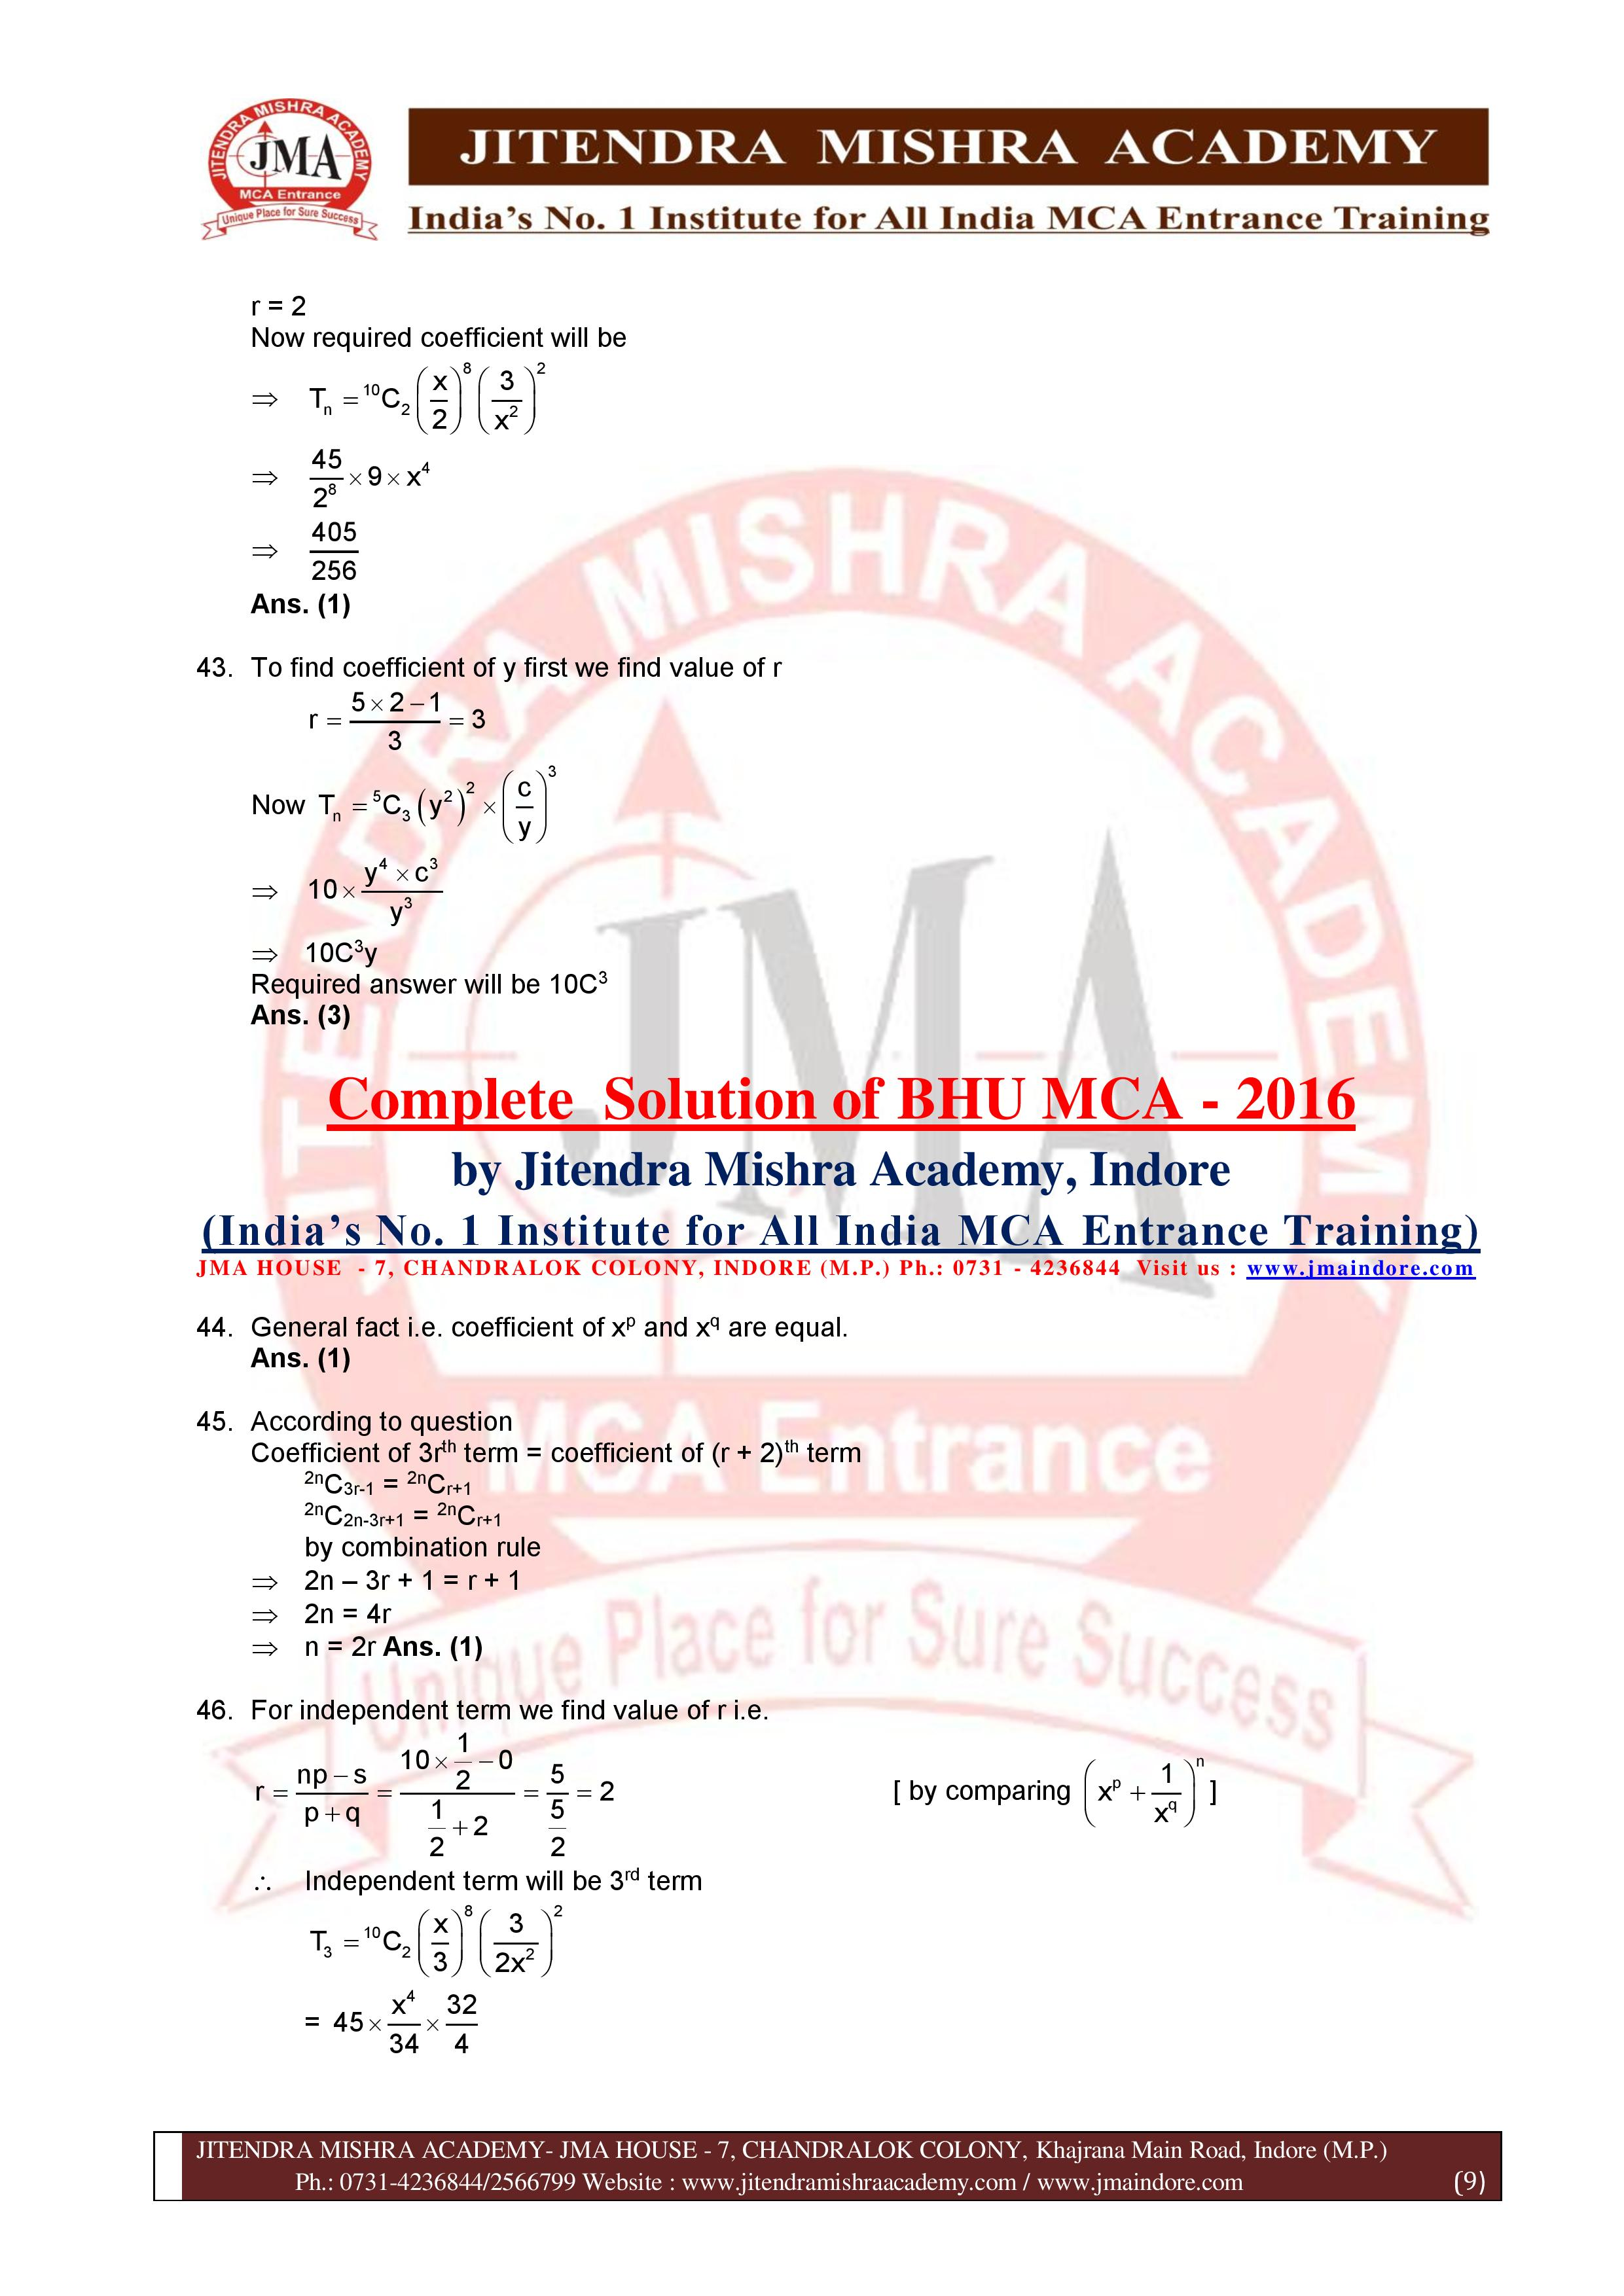 BHU 2016 SOLUTION (SET - 1)-page-009